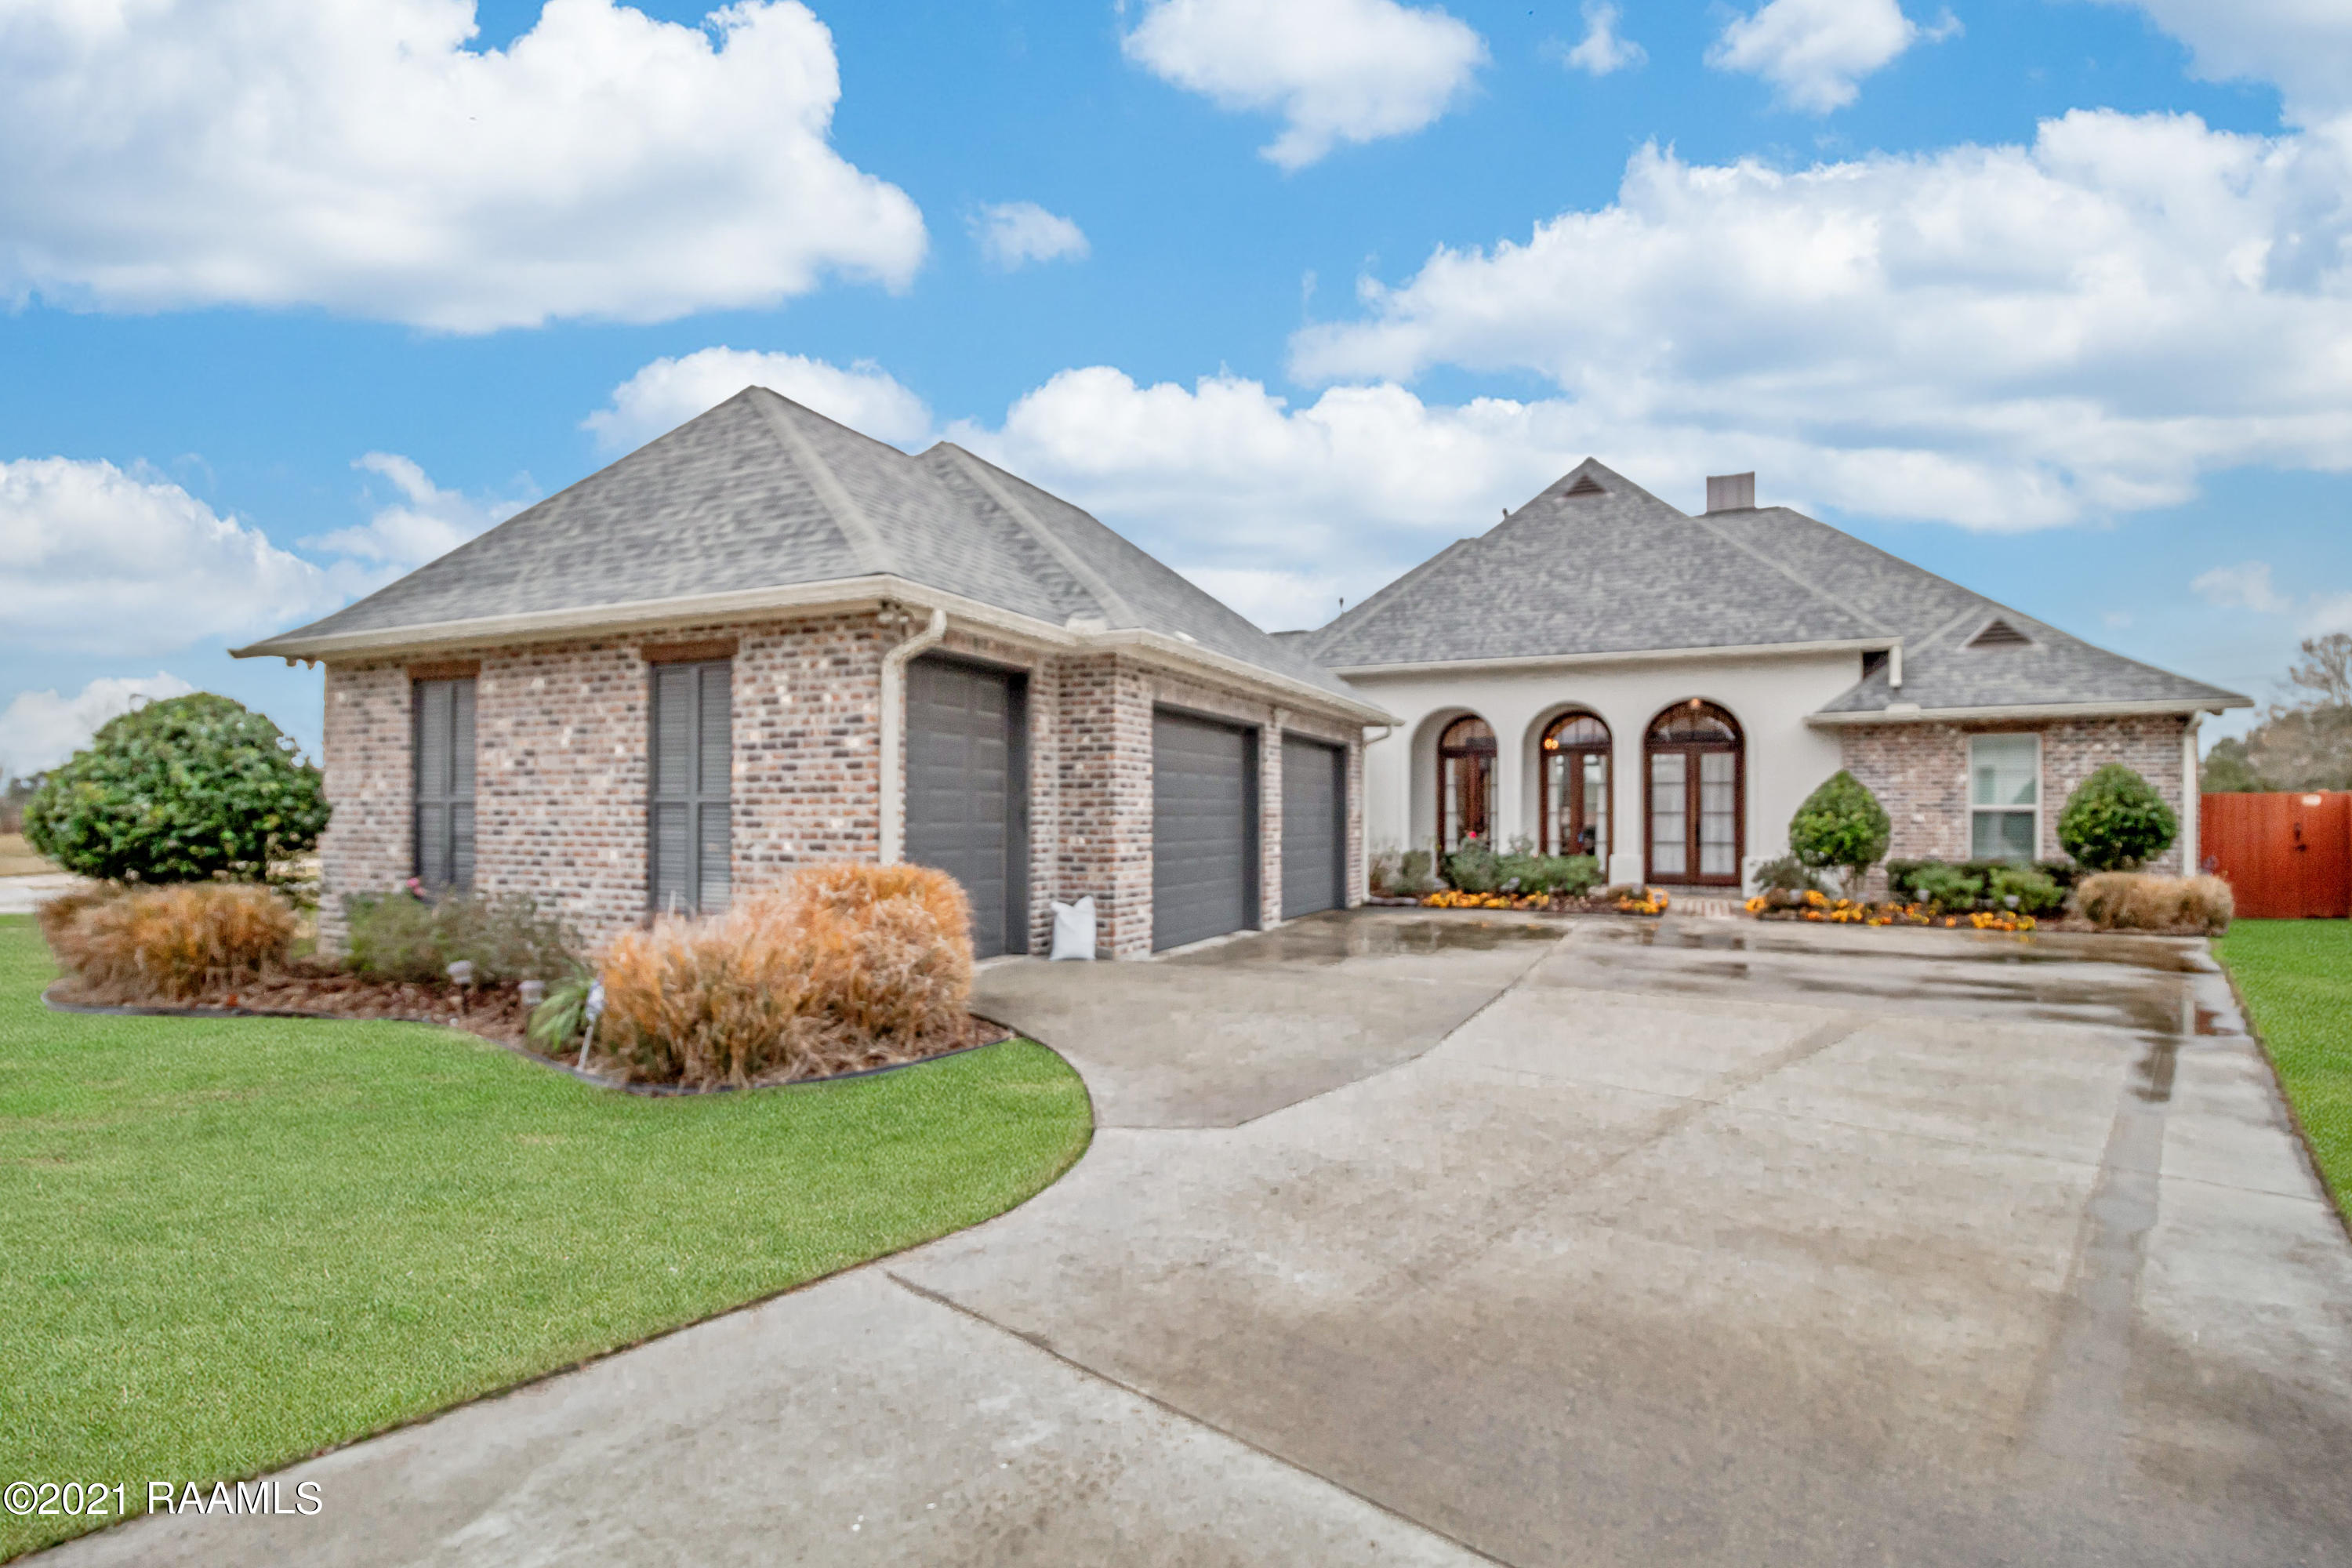 128 Carriage Lakes Drive, Youngsville, LA 70592 Photo #1